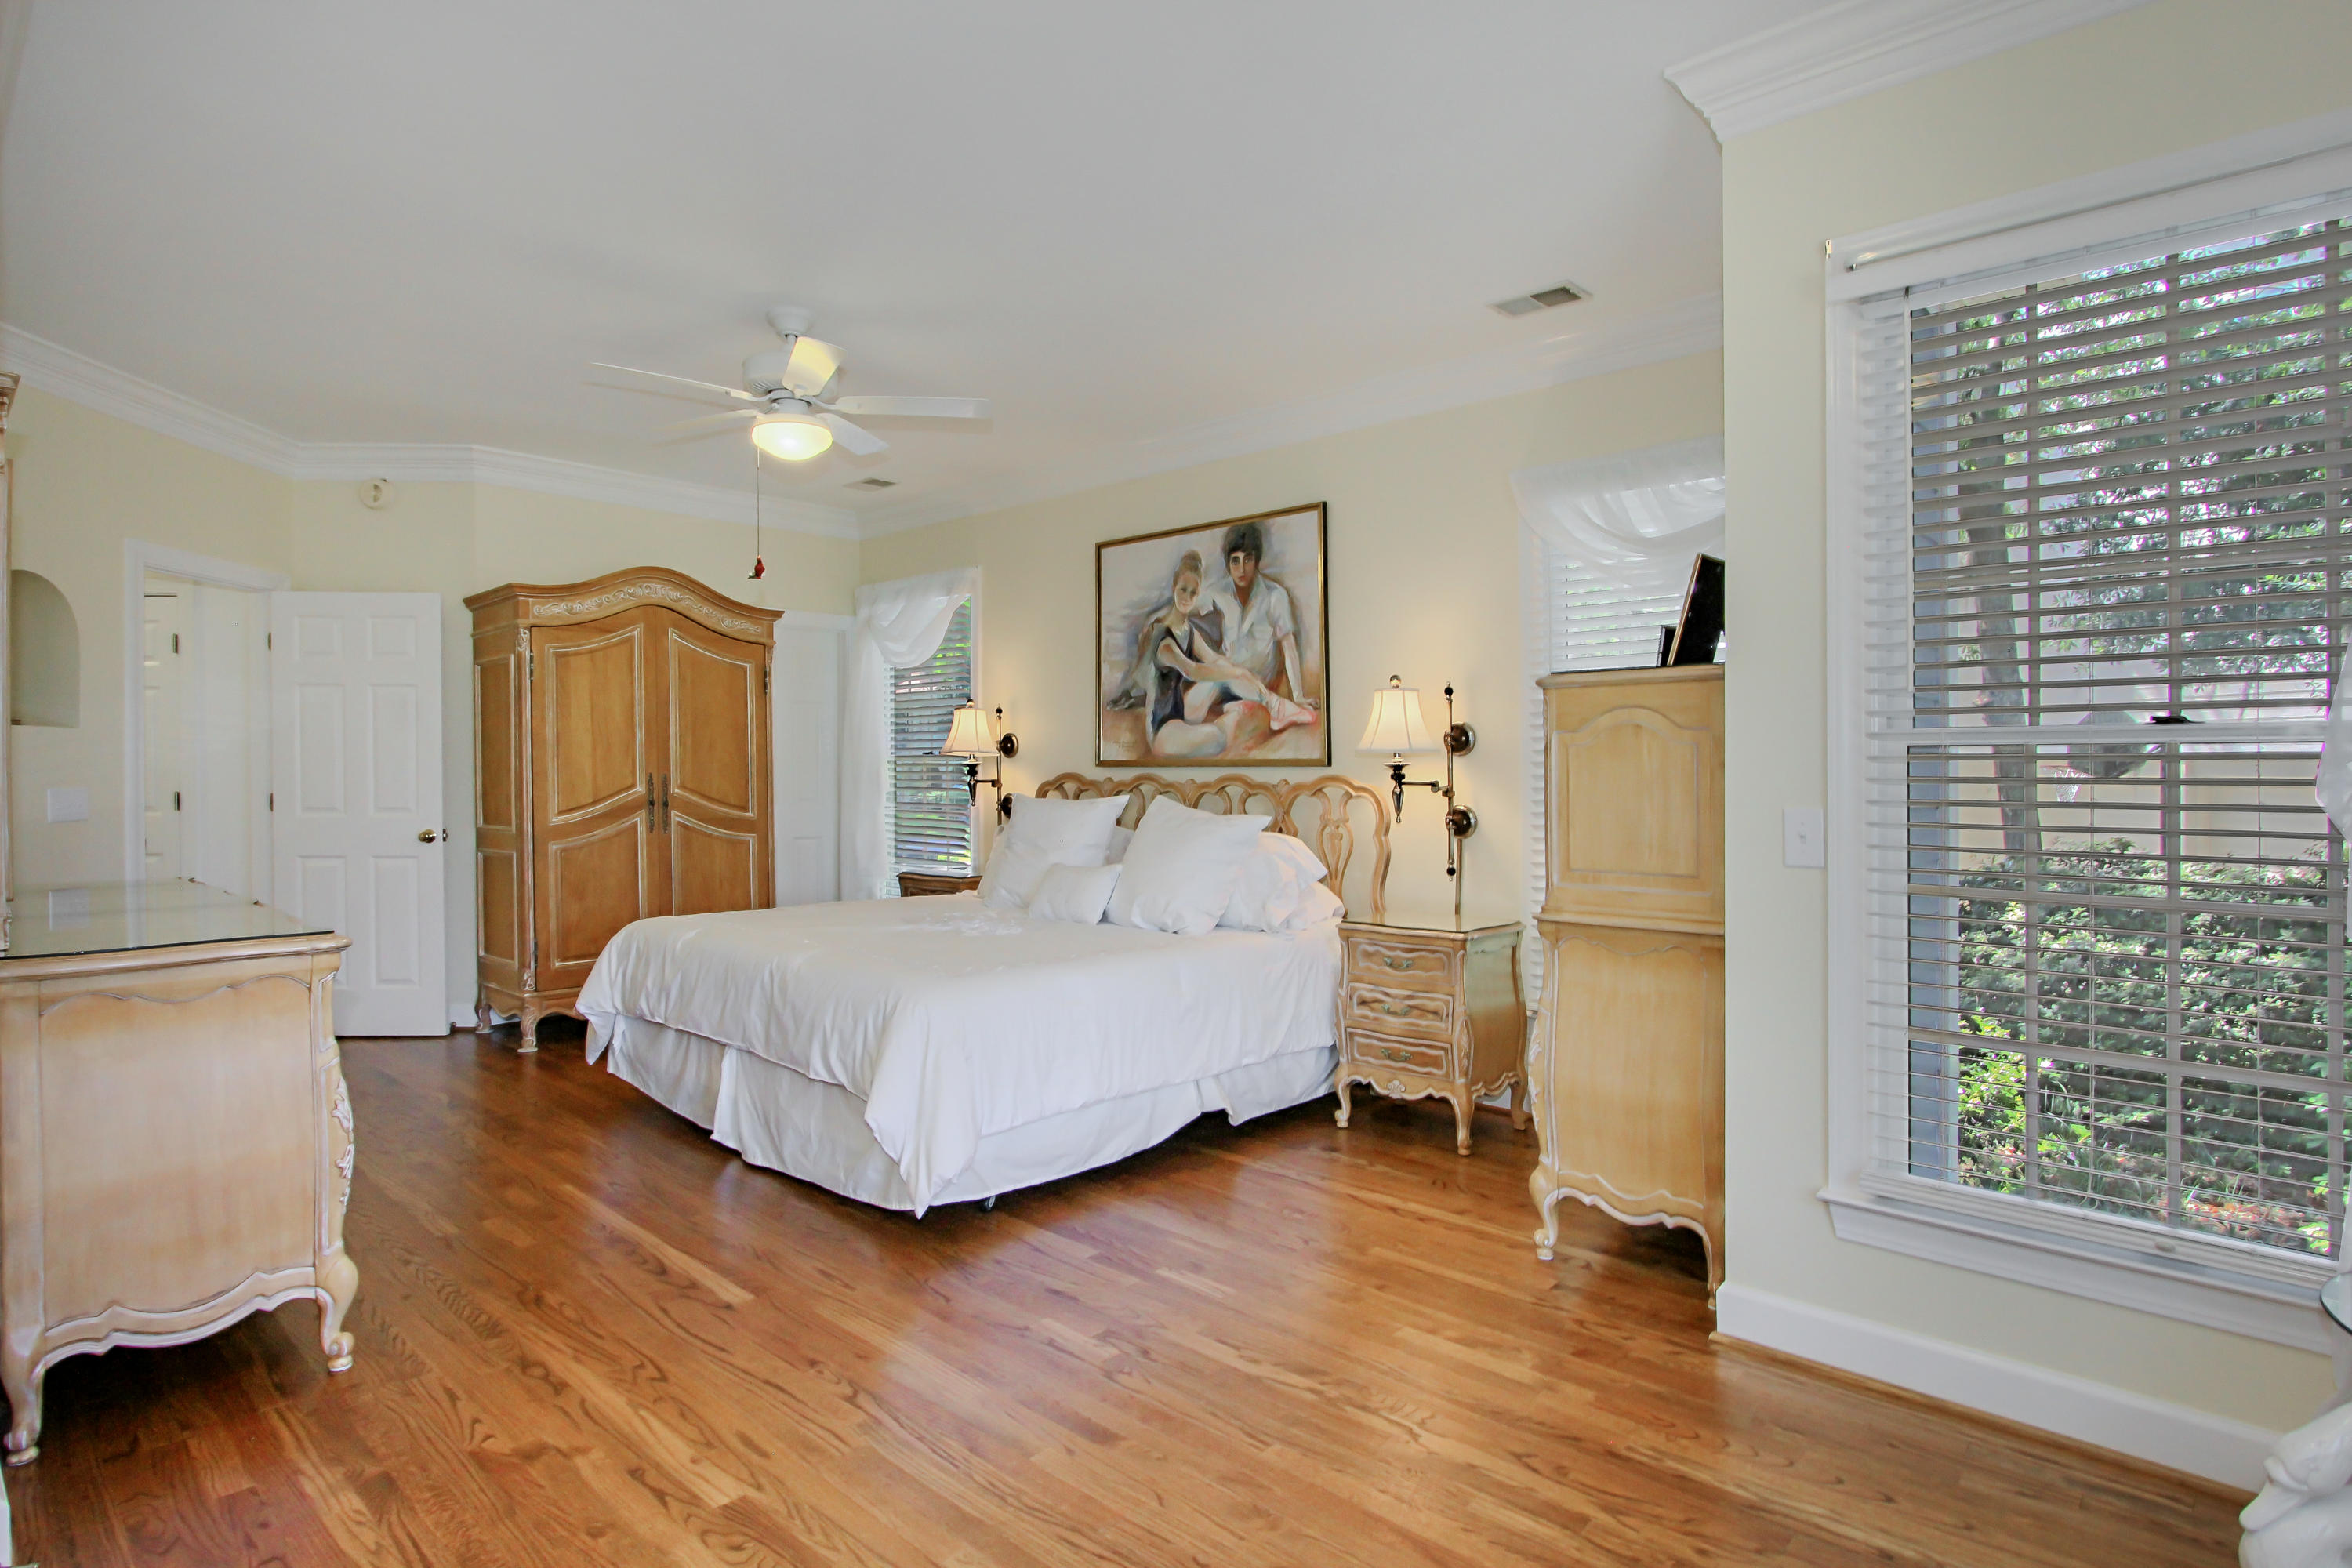 Stiles Point Plantation Homes For Sale - 837 Whispering Marsh, Charleston, SC - 8